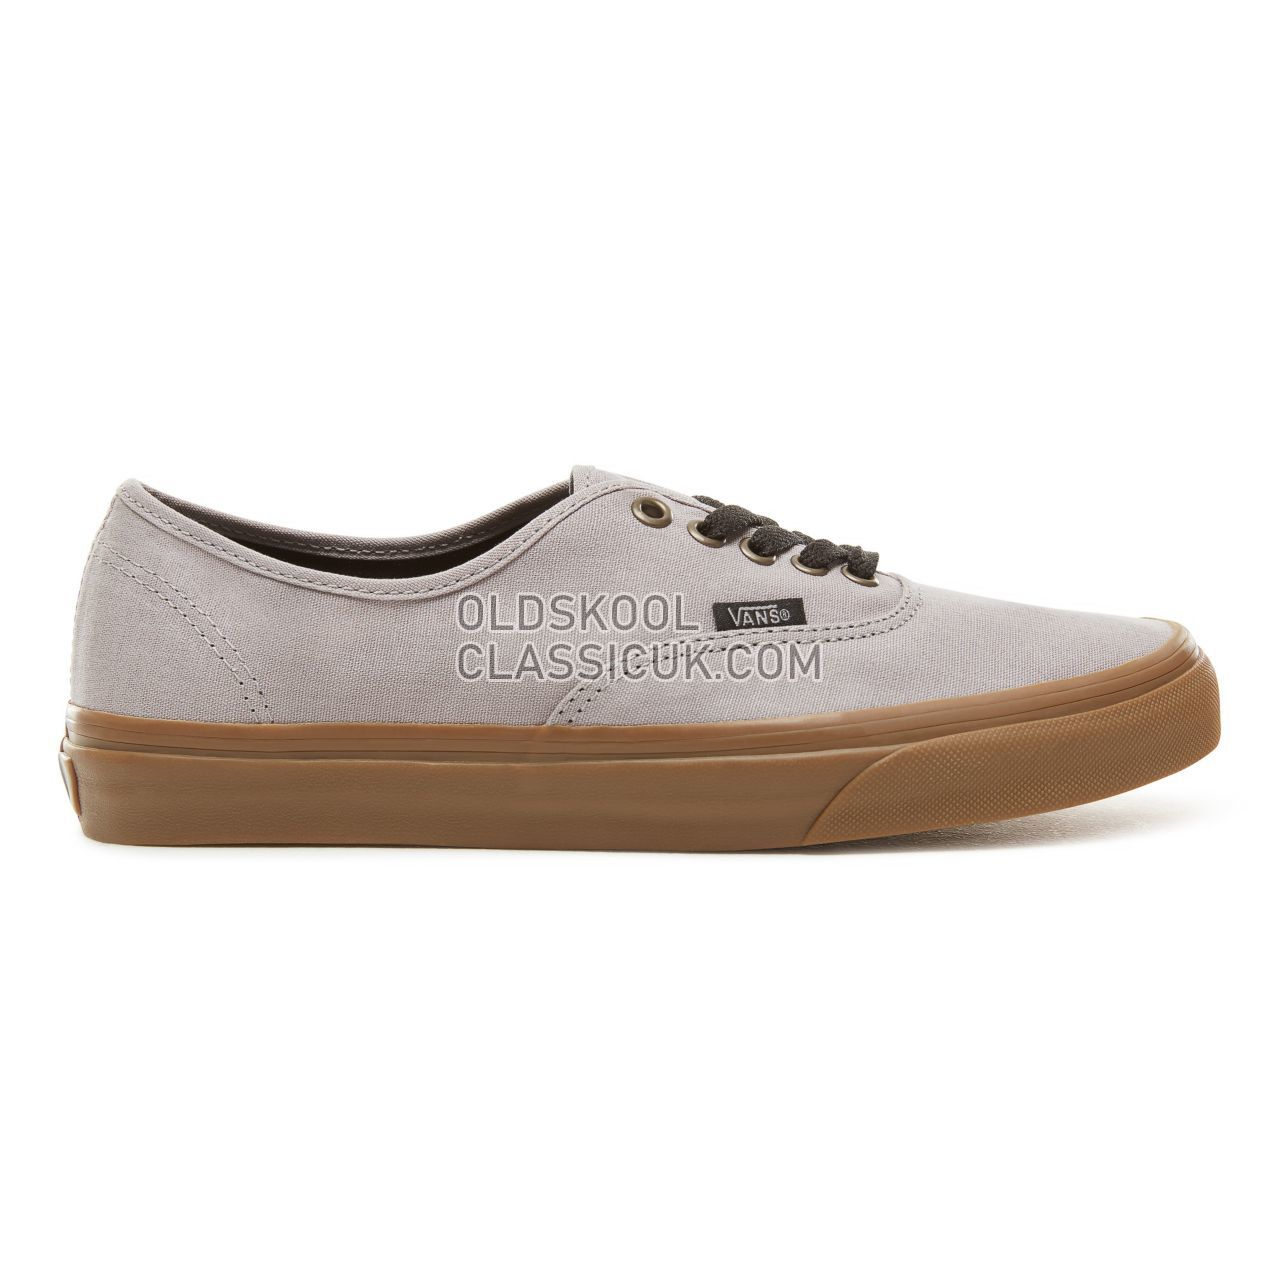 Vans Gum Outsole Authentic Sneakers Mens (Gum Outsole) AlloyBlack VA38EMU40 Shoes £47